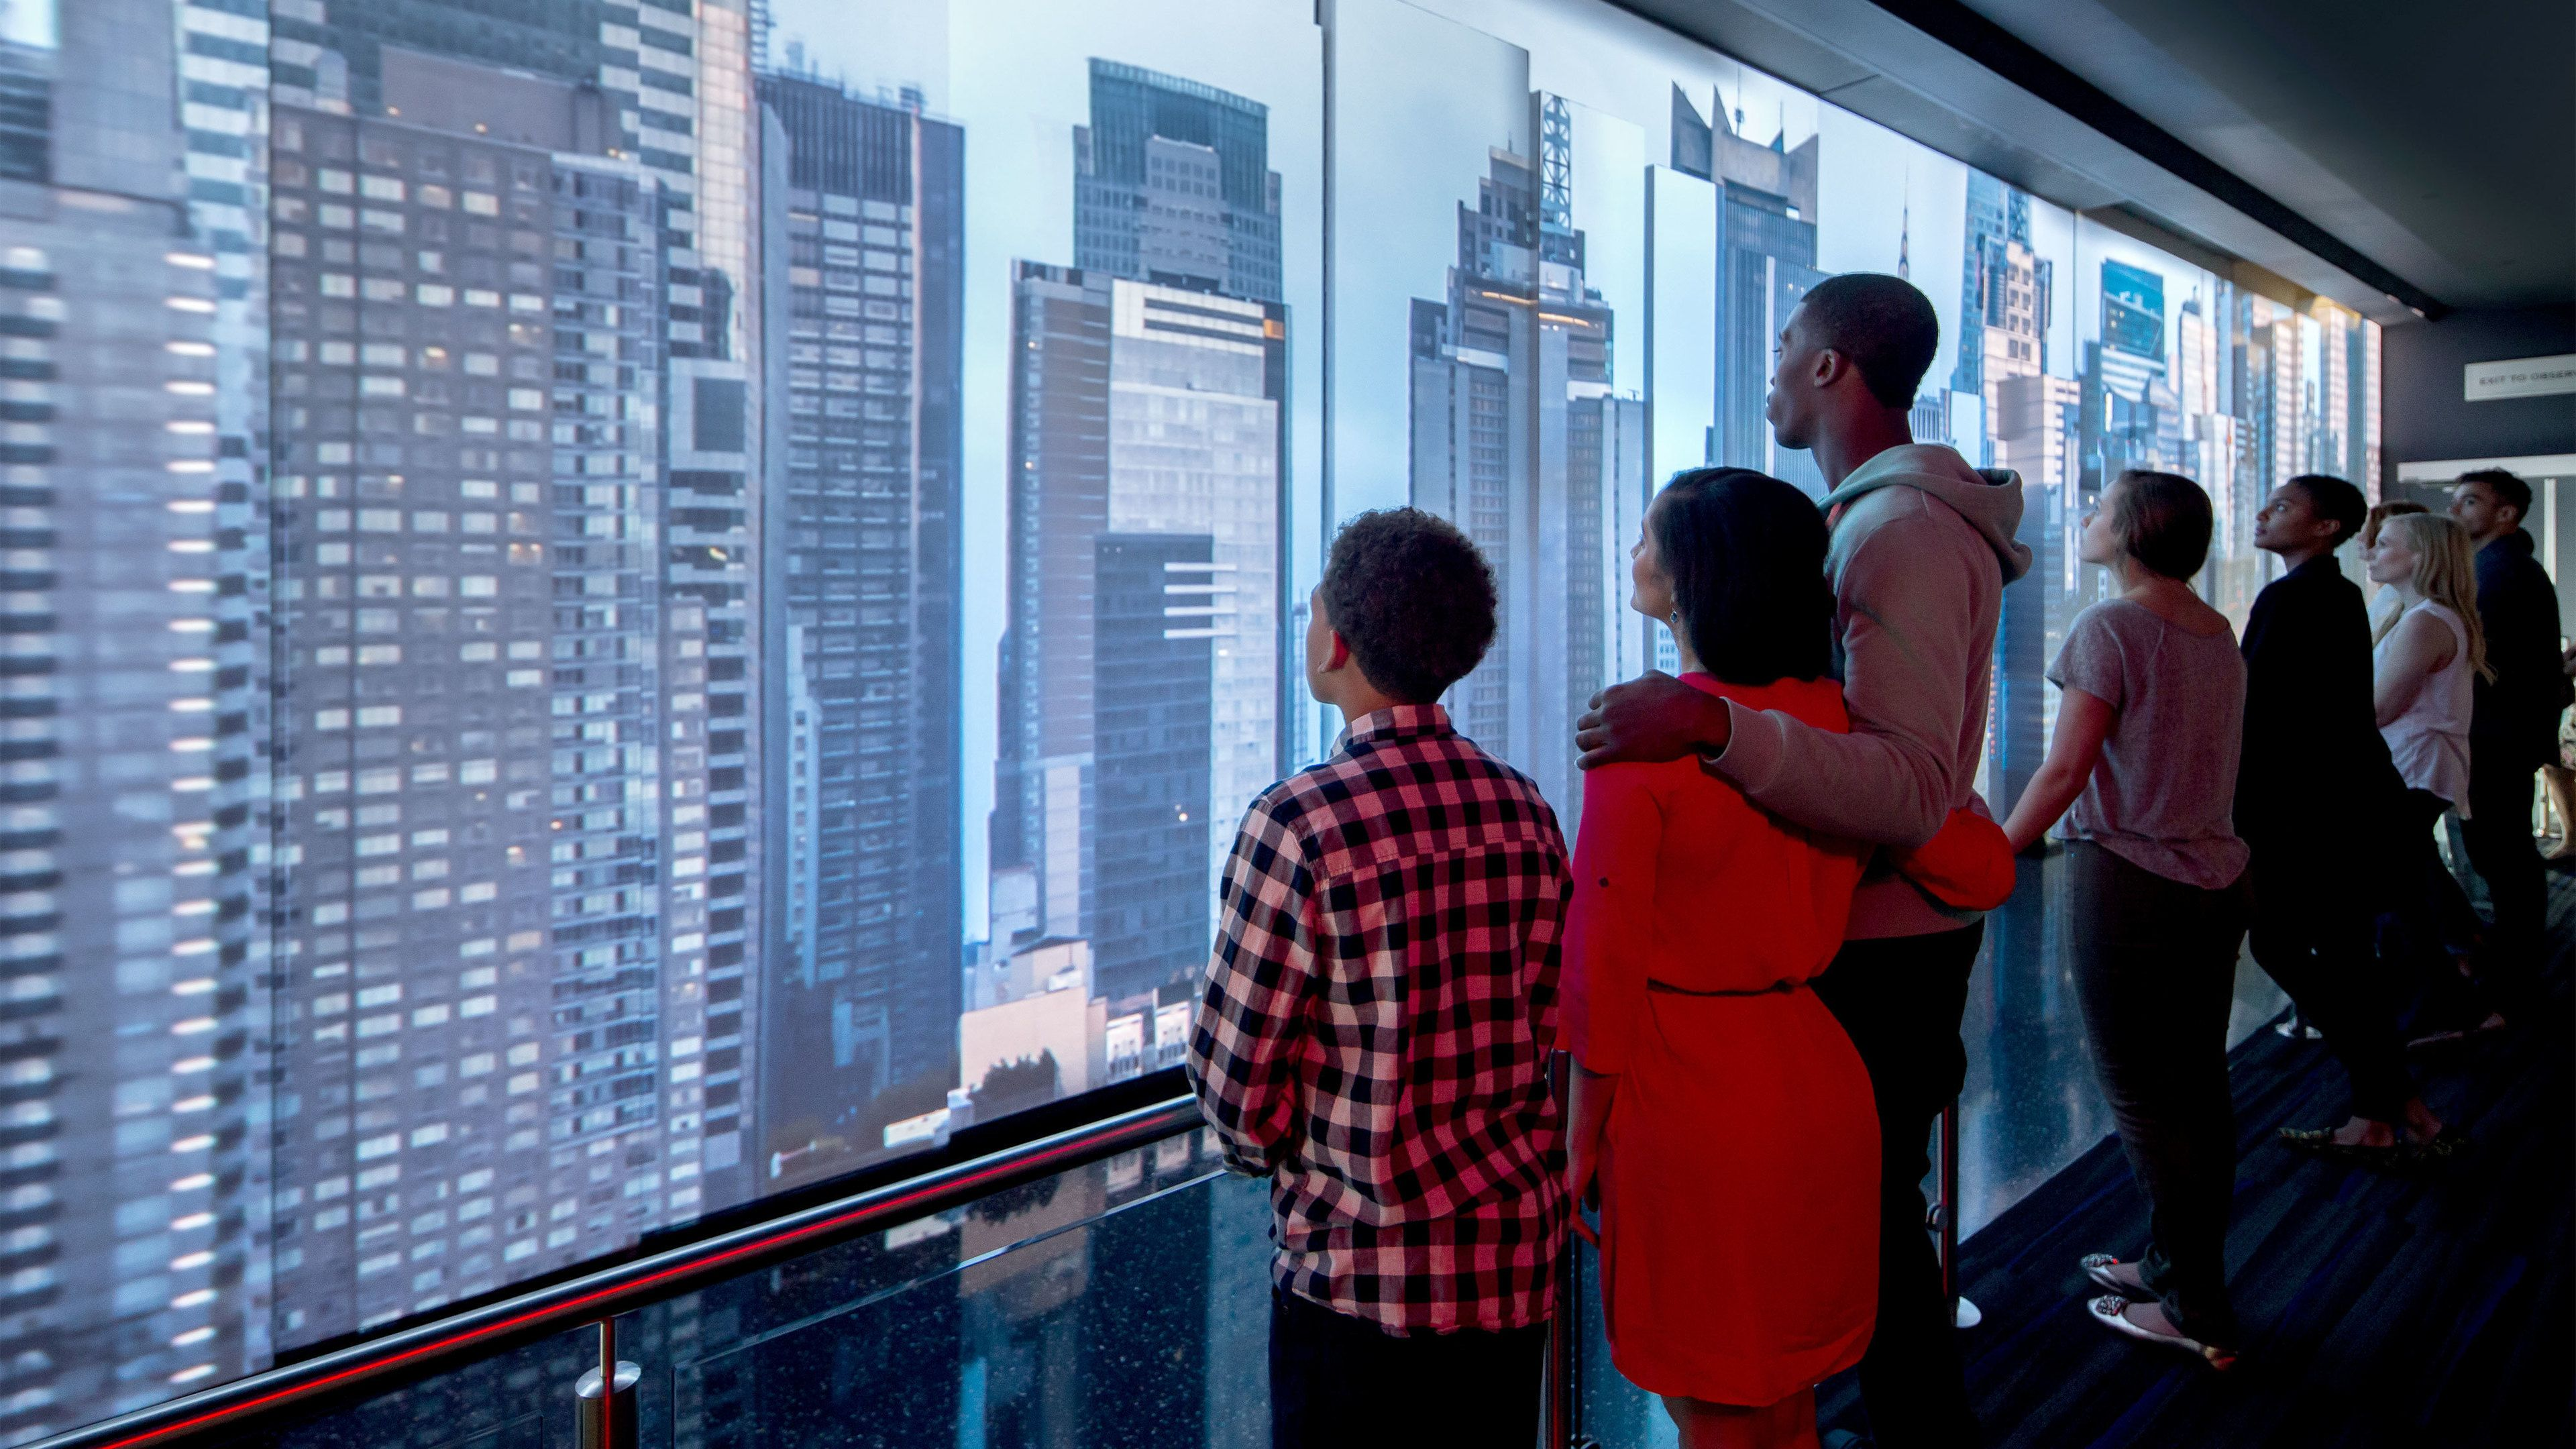 Tourists at the One World Observatory in New York